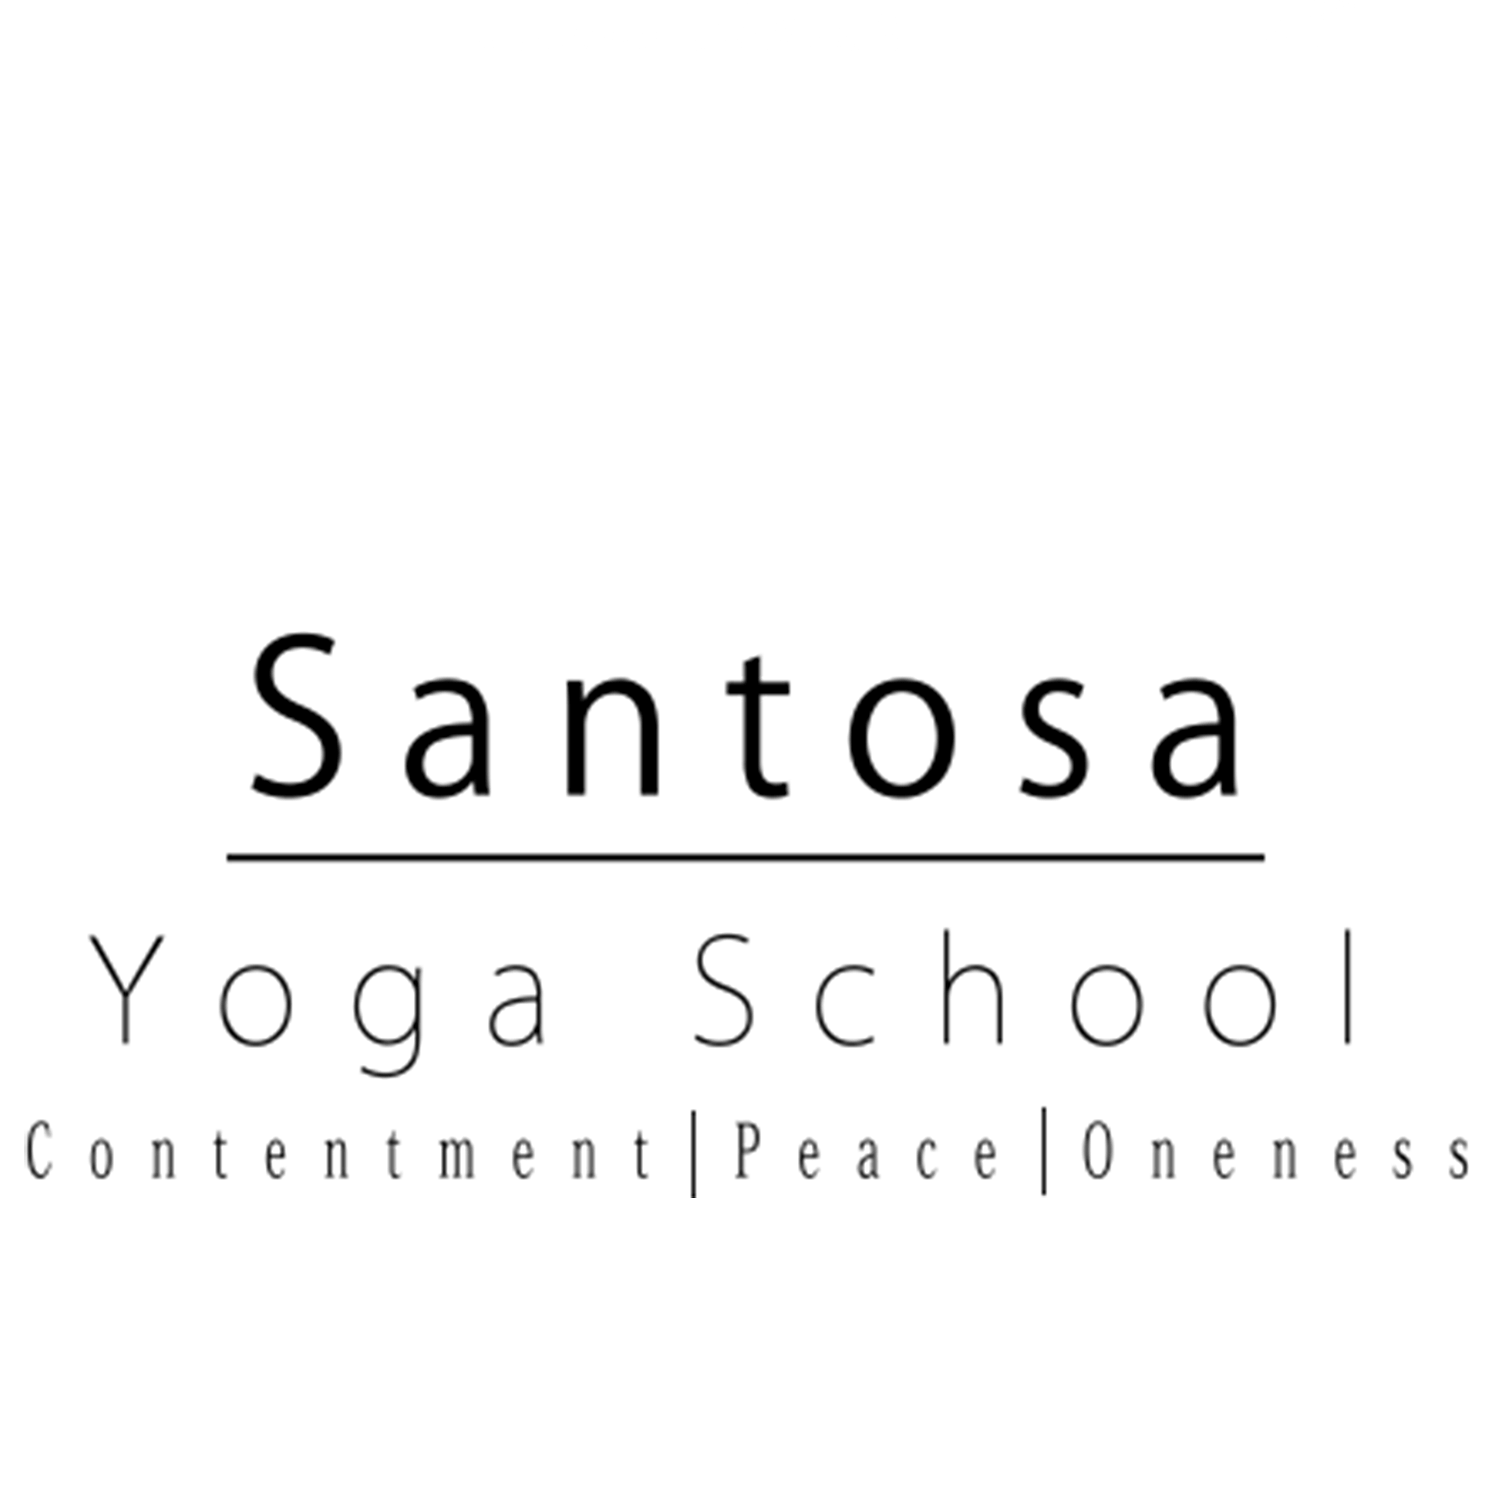 Santosa Yoga School another logo